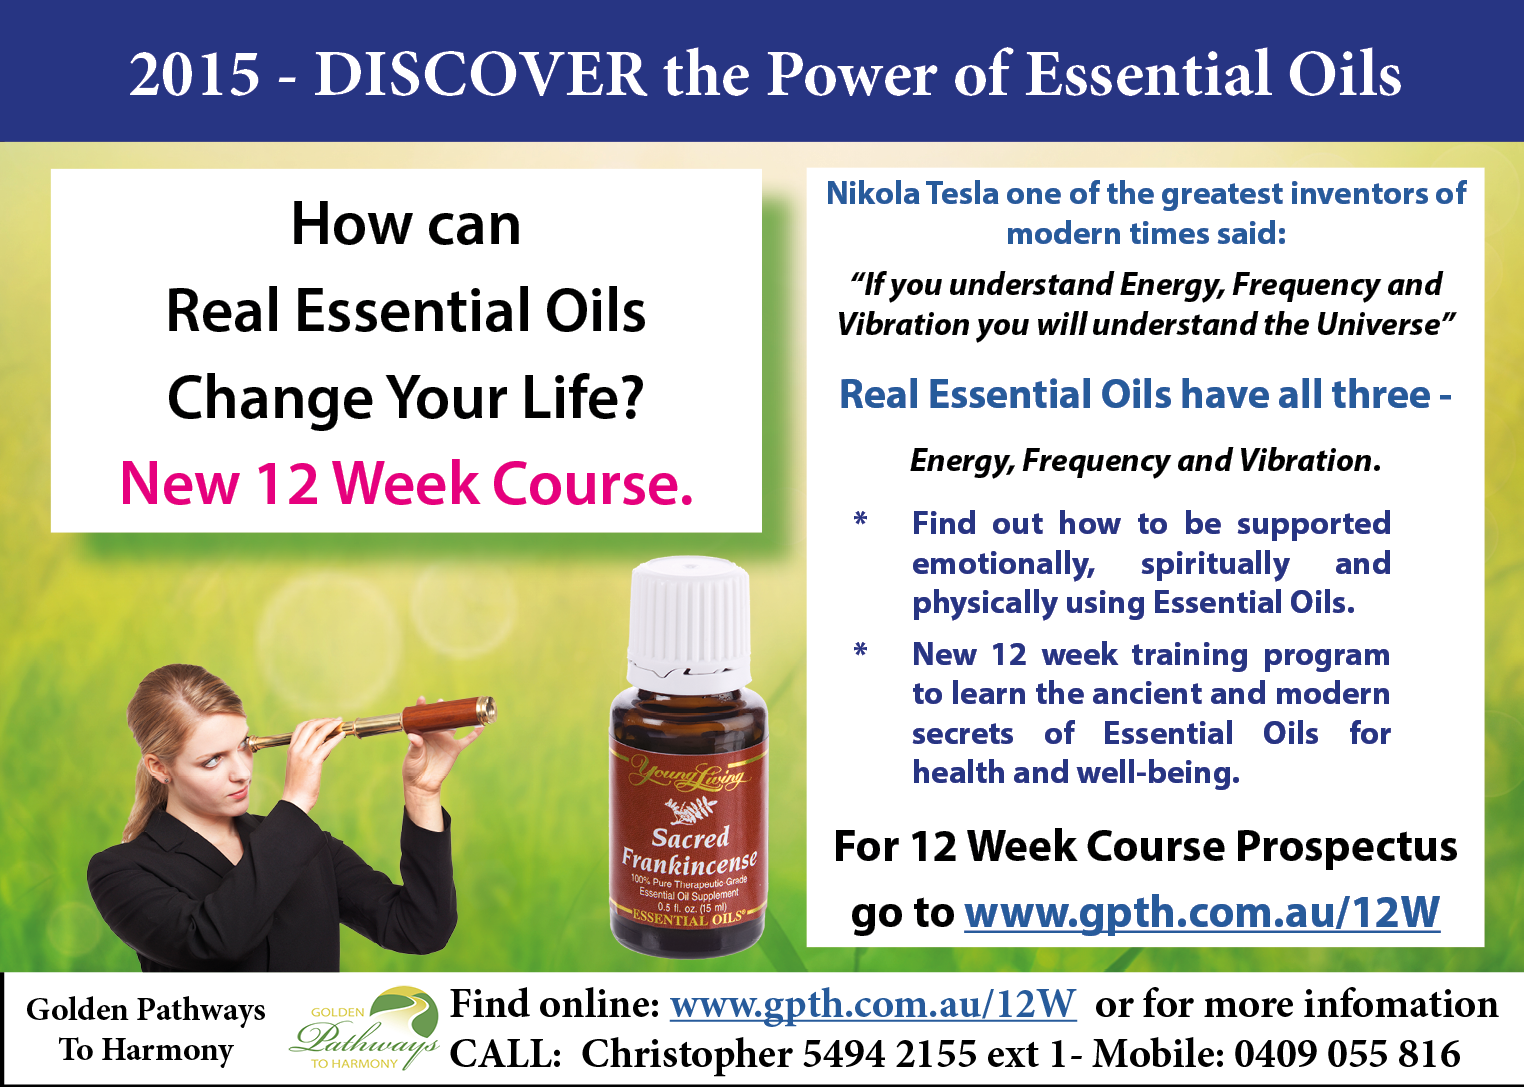 Discover the power of Essential Oils - Workshops in Maleny, Buderim, Nambour and Caloundra